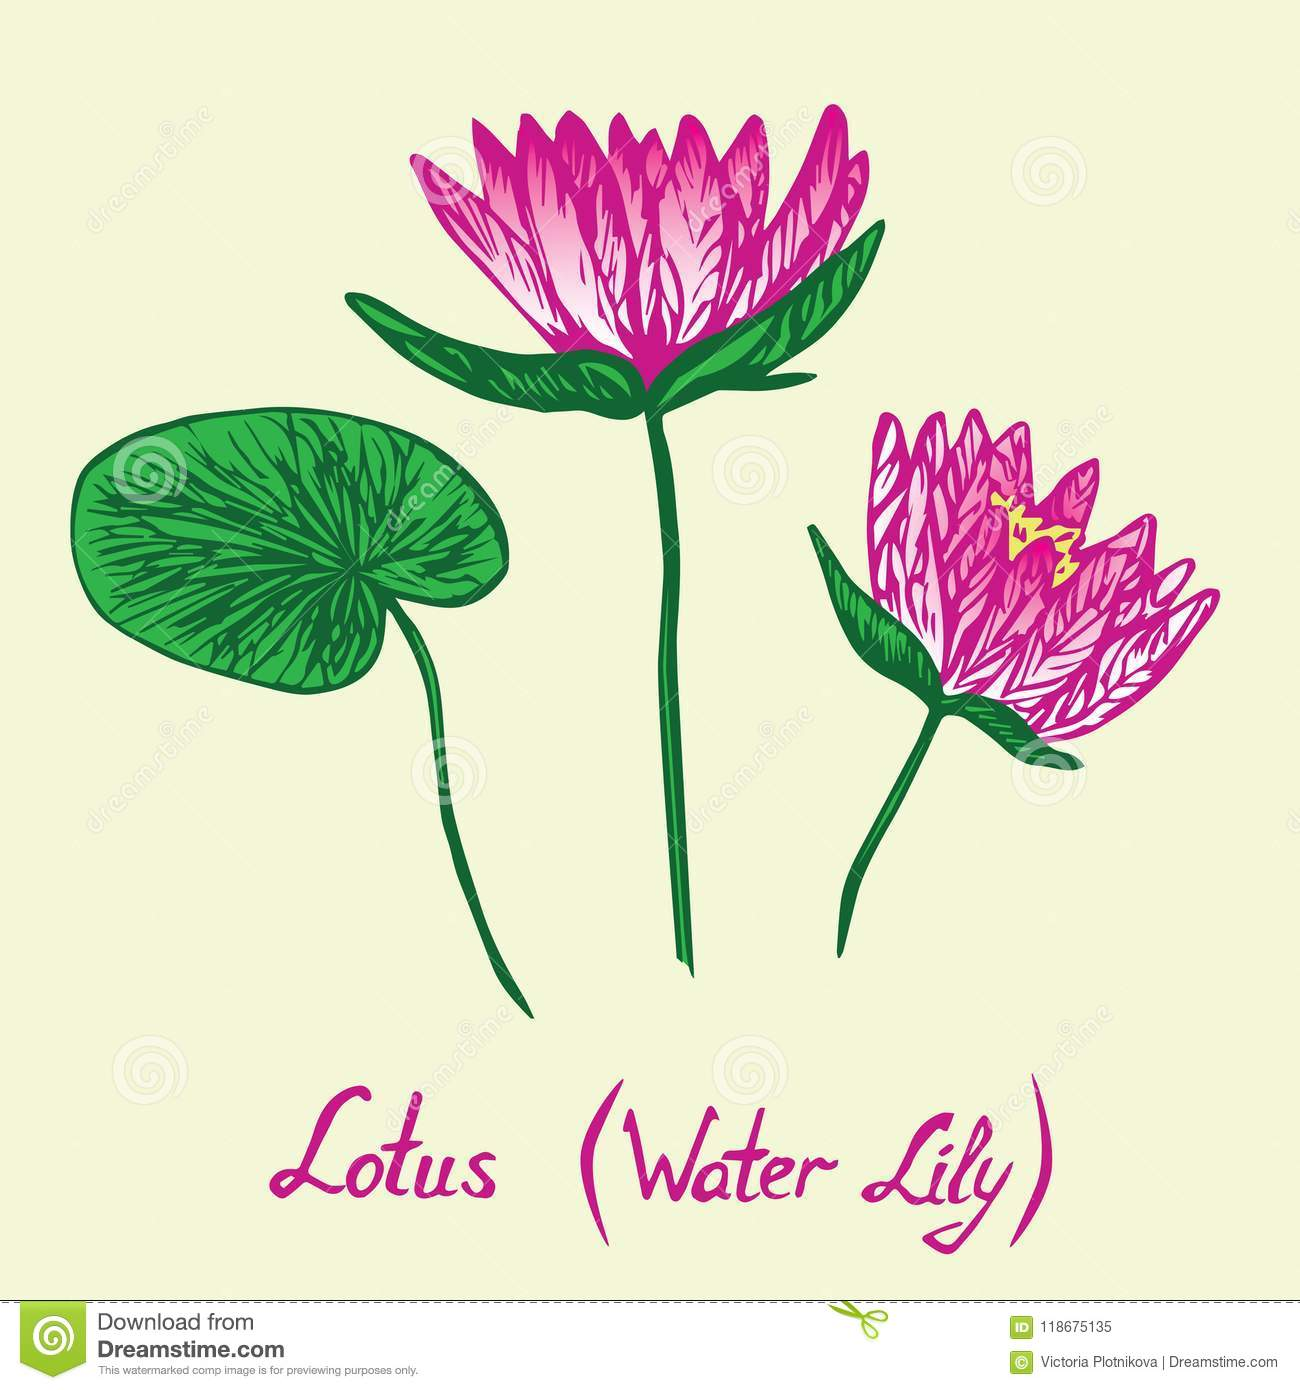 Lotus water lily flowers and leaves set with inscription stock lotus water lily flowers and leaves set with inscription izmirmasajfo